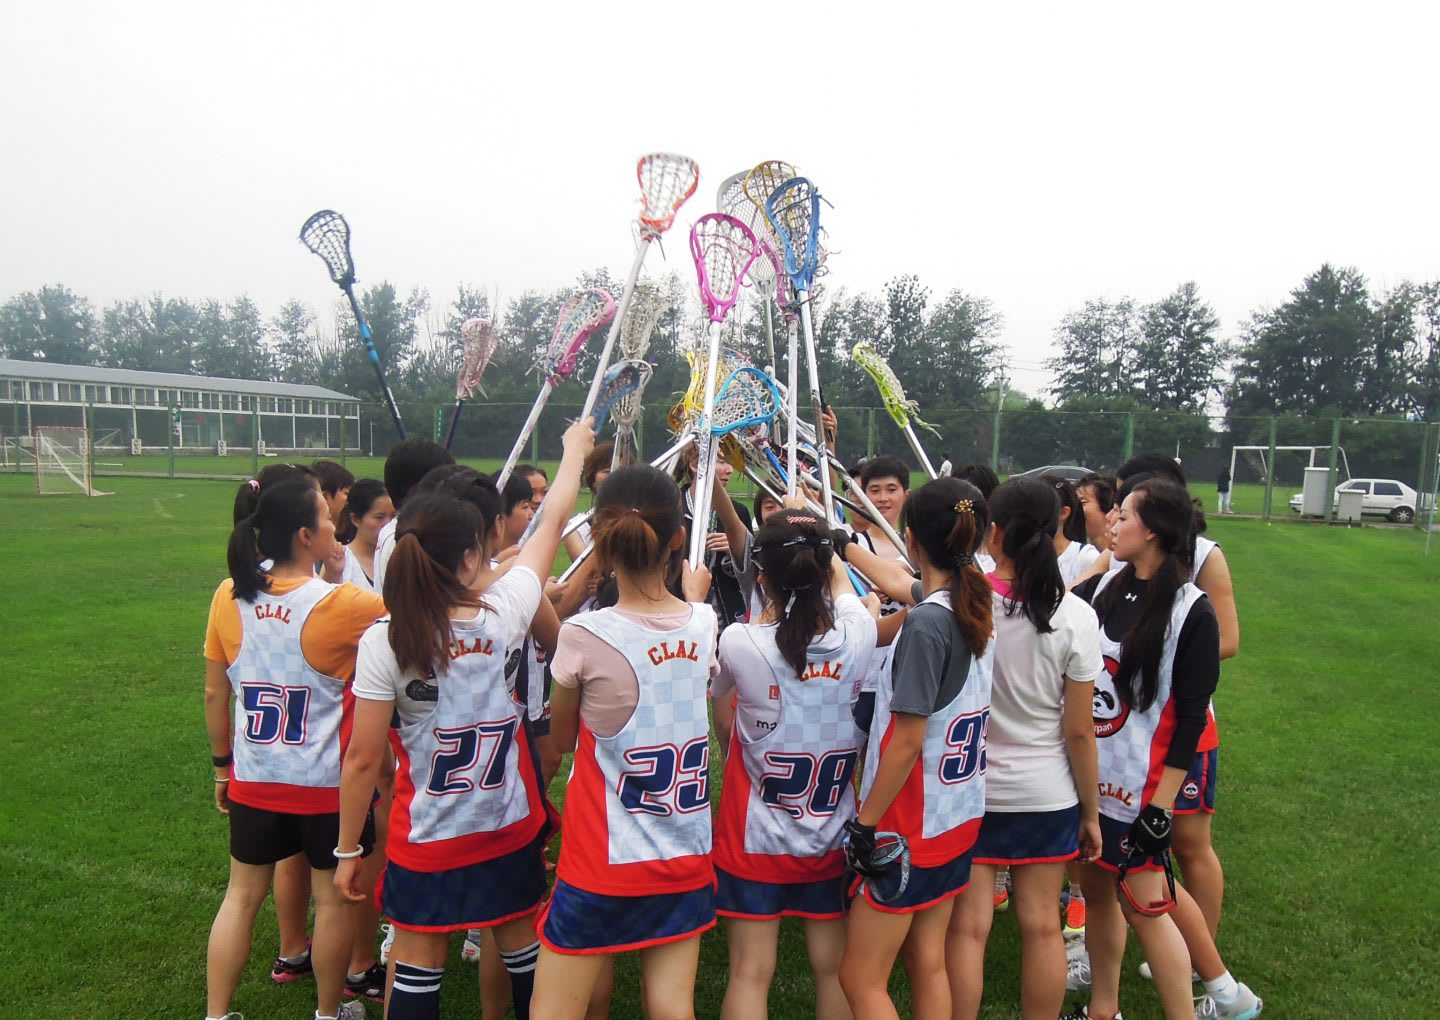 women lacrosse team standing together team spirit